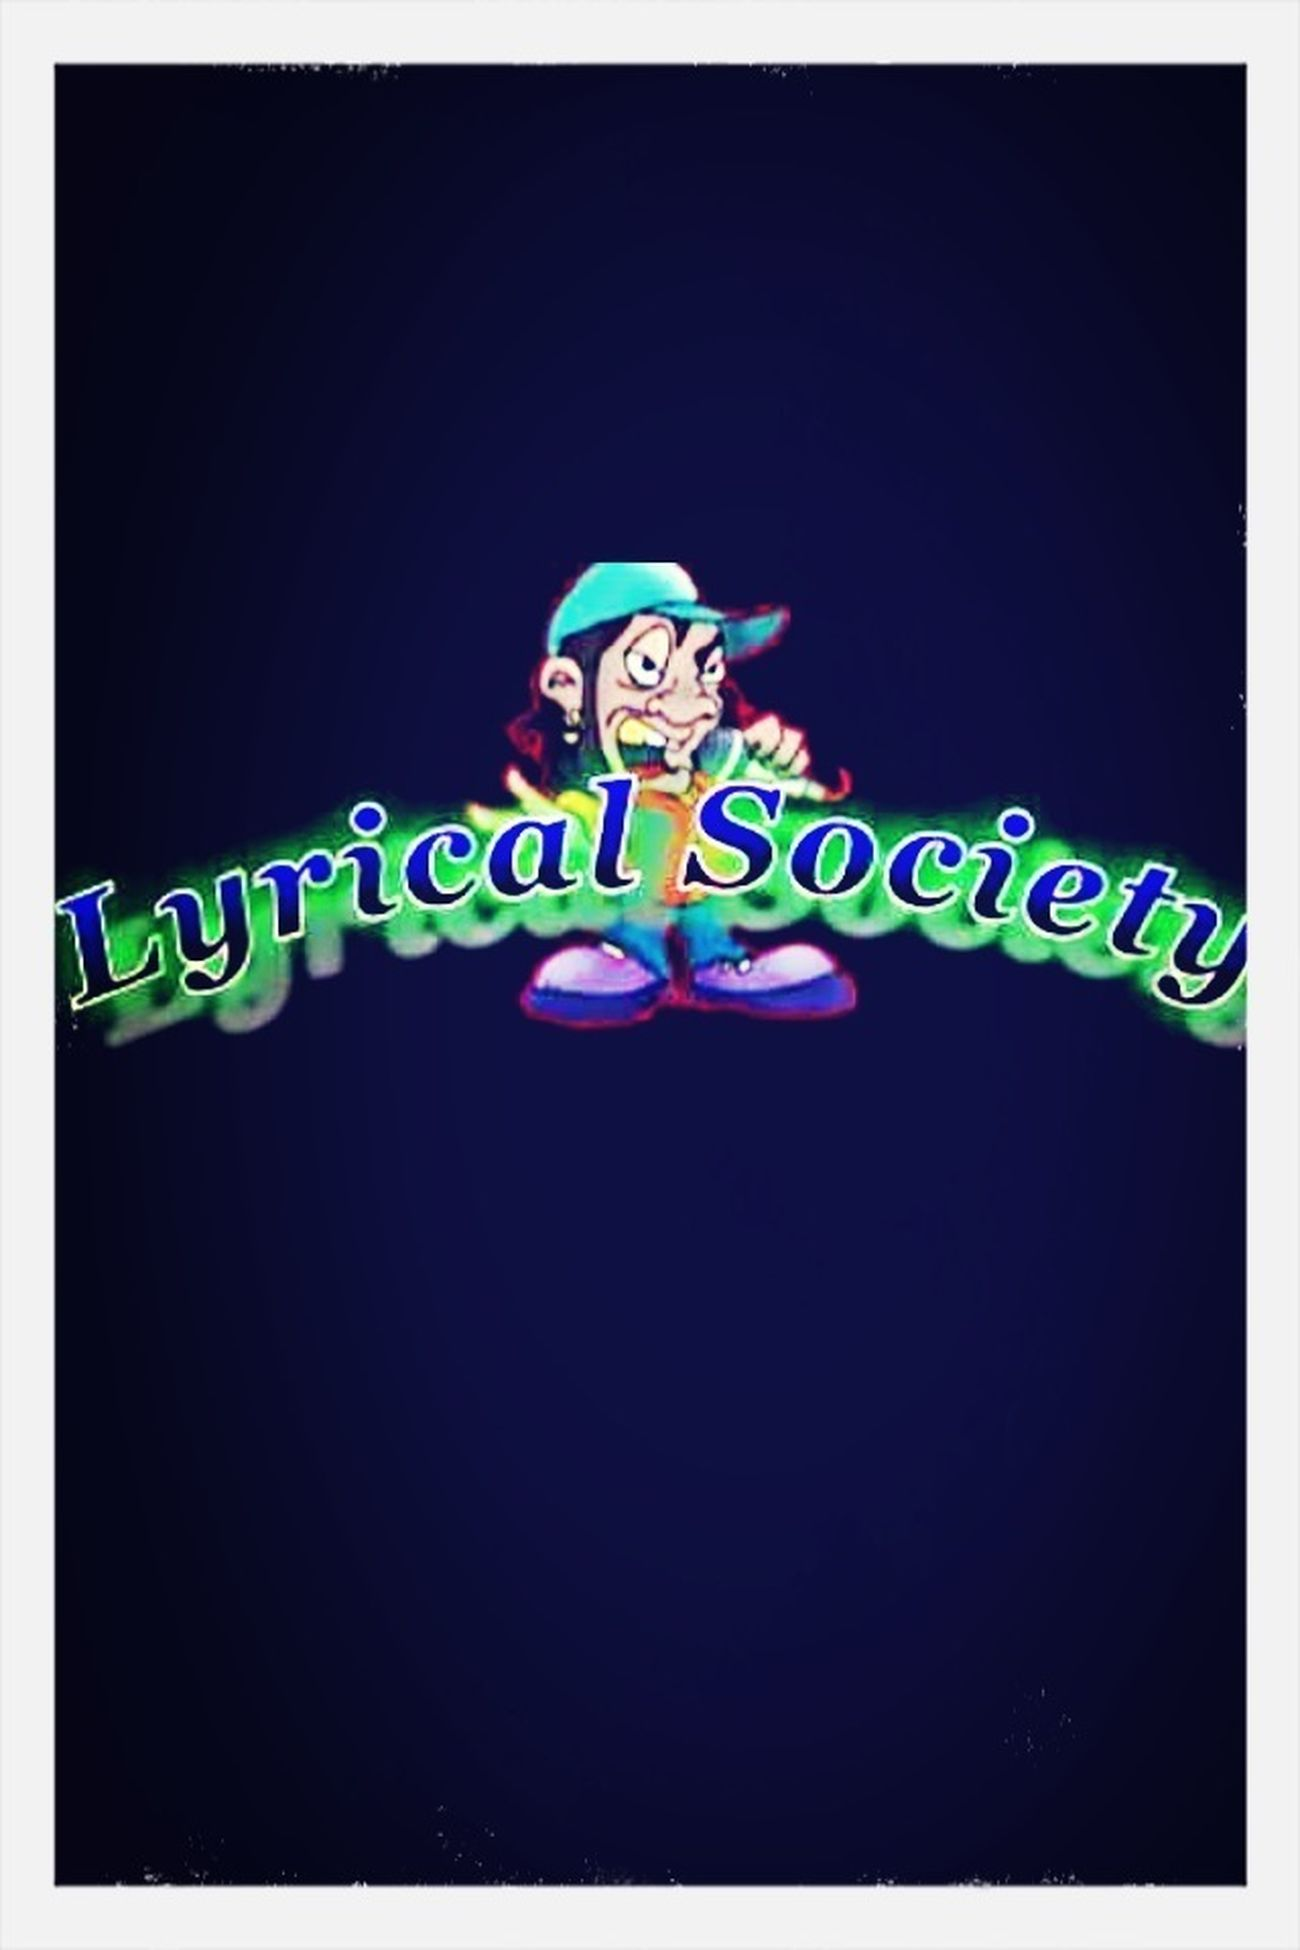 Follow My Team @LyricalSociety On IG And TWITTER